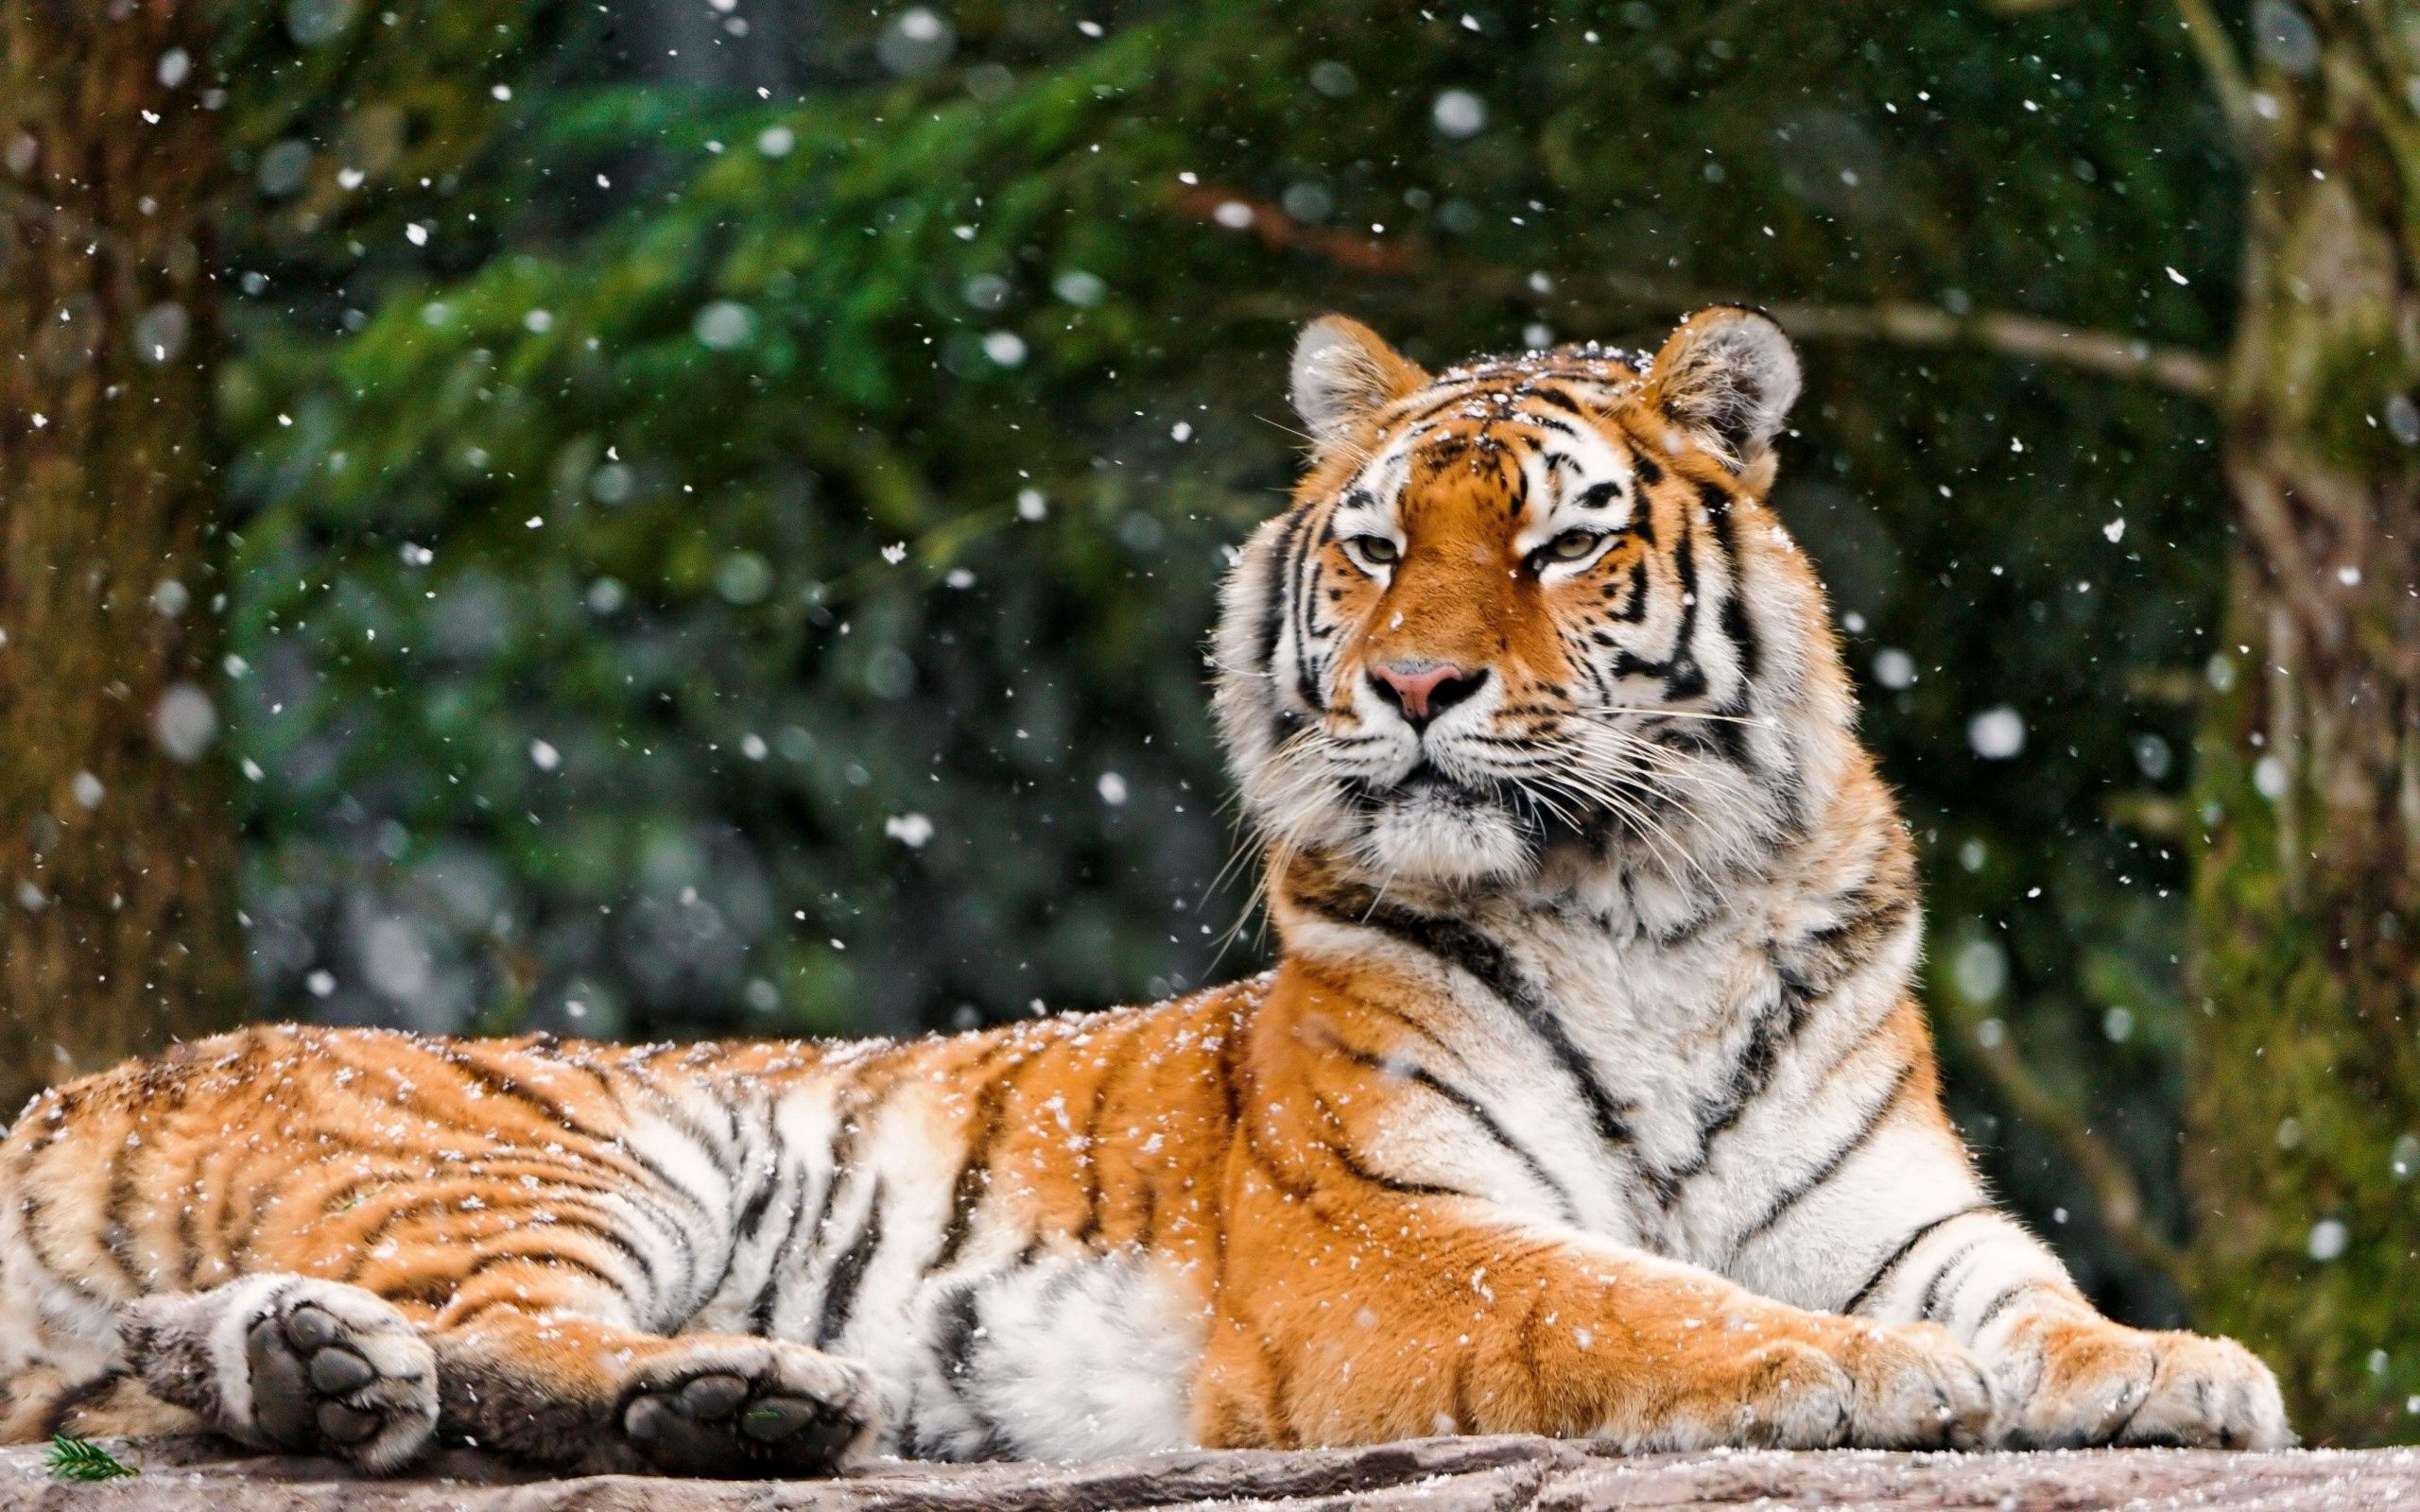 59517 download wallpaper Animals, Snow, To Lie Down, Lie, Predator, Tiger screensavers and pictures for free